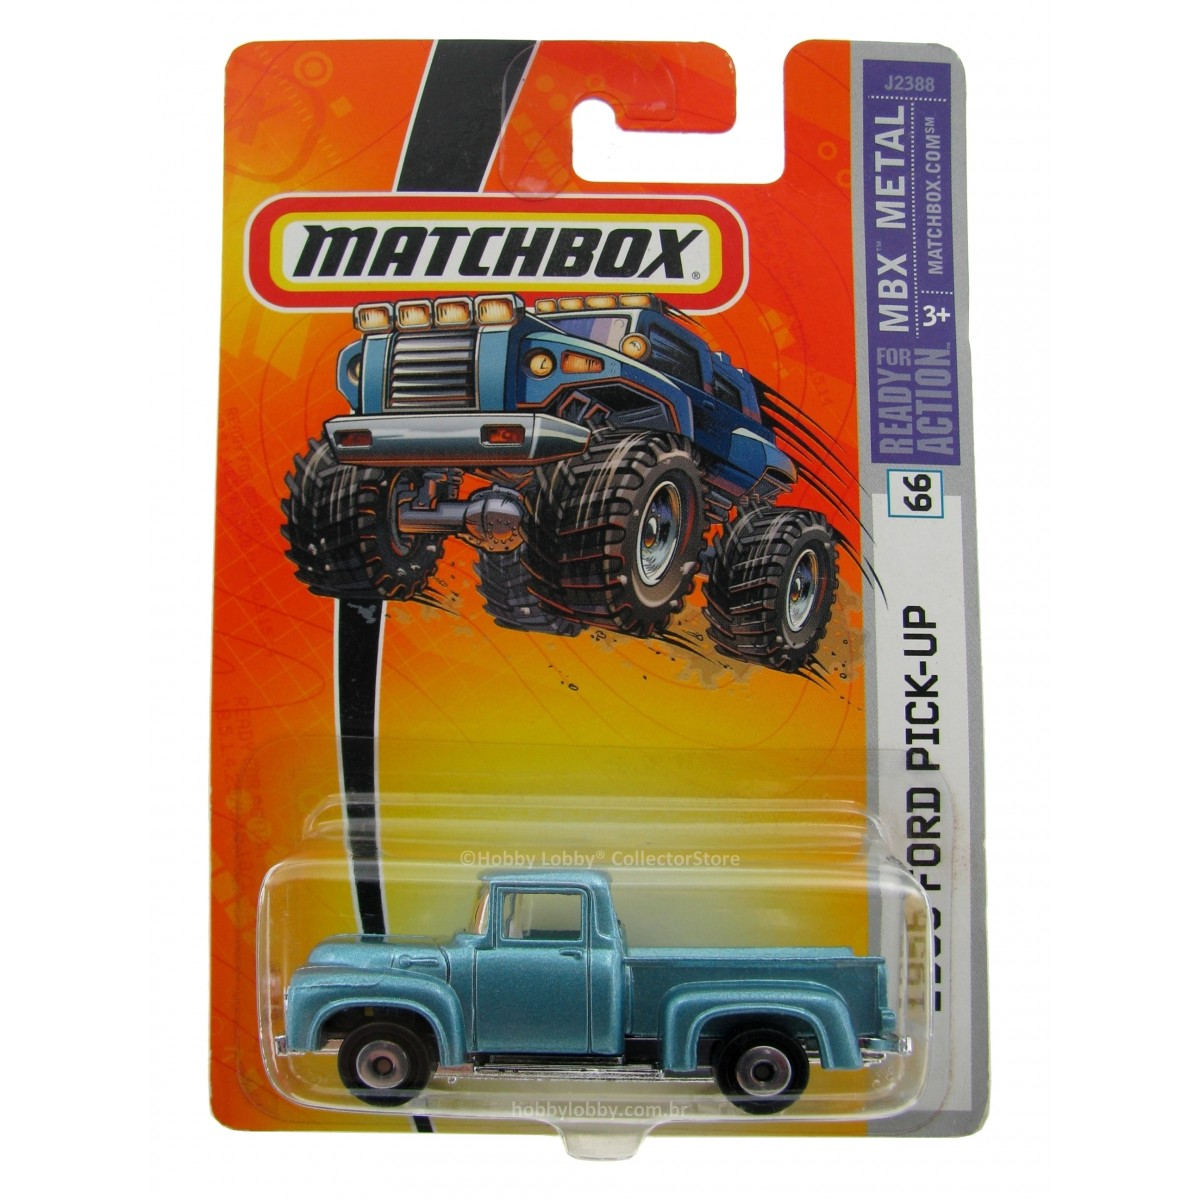 Matchbox - Coleção 2006 - 1956 Ford Pick-up  - Hobby Lobby CollectorStore